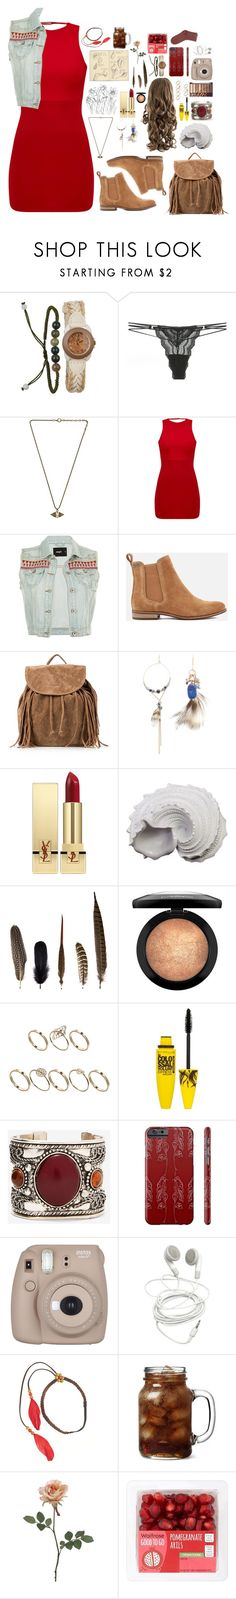 """""""PIPER MCLEAN: COLLEGE"""" by fran-peeters ❤ liked on Polyvore featuring Cosabella, Lionette, Superdry, NLY Accessories, Yves Saint Laurent, Urban Trends Collection, Moleskine, Mineheart, ASOS and Maybelline"""